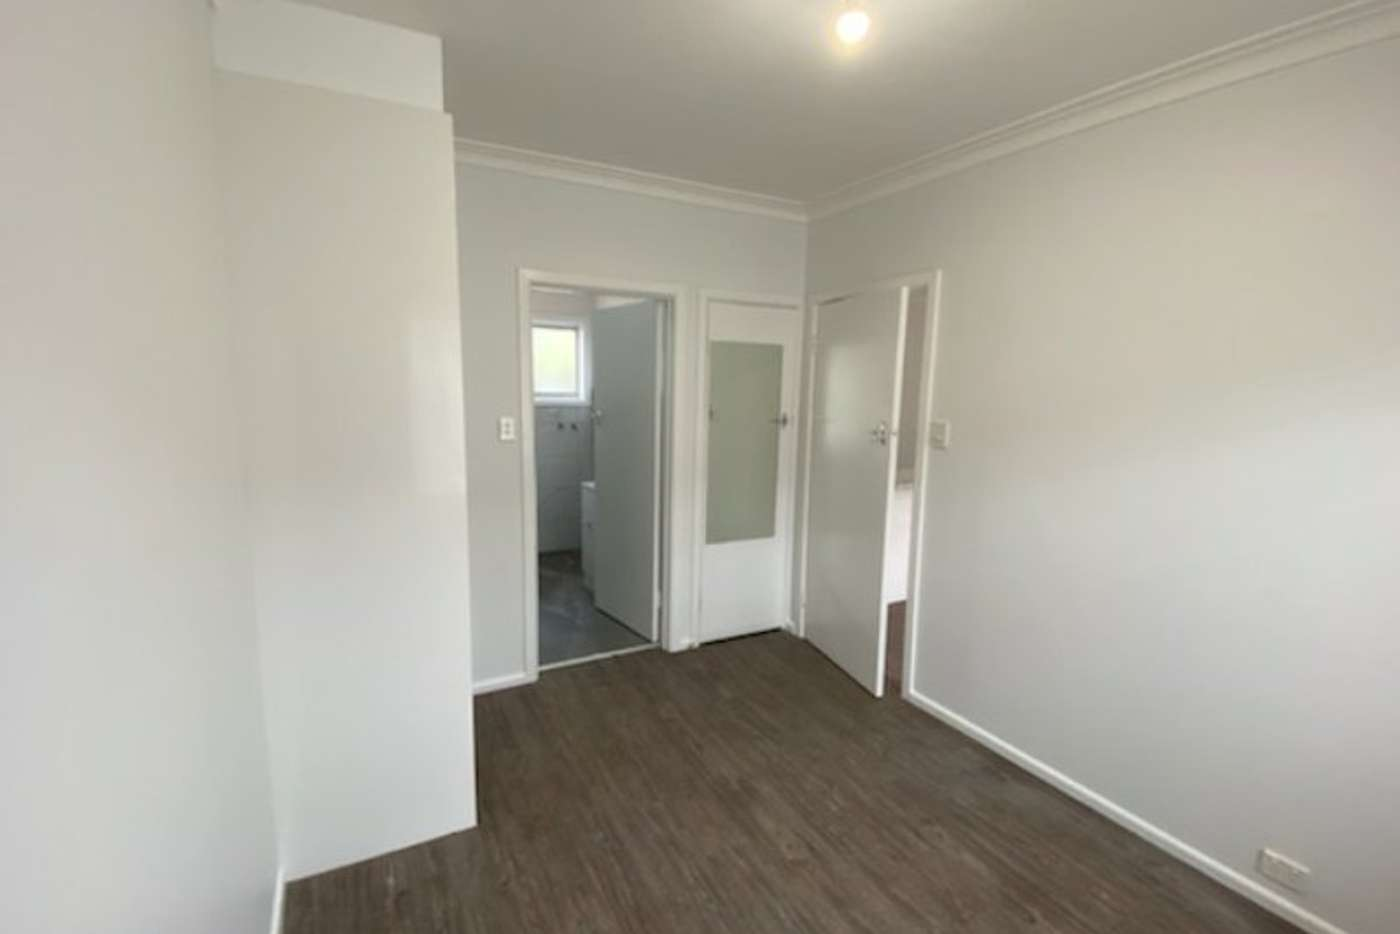 Seventh view of Homely house listing, 8/6 Percy street, St Albans VIC 3021